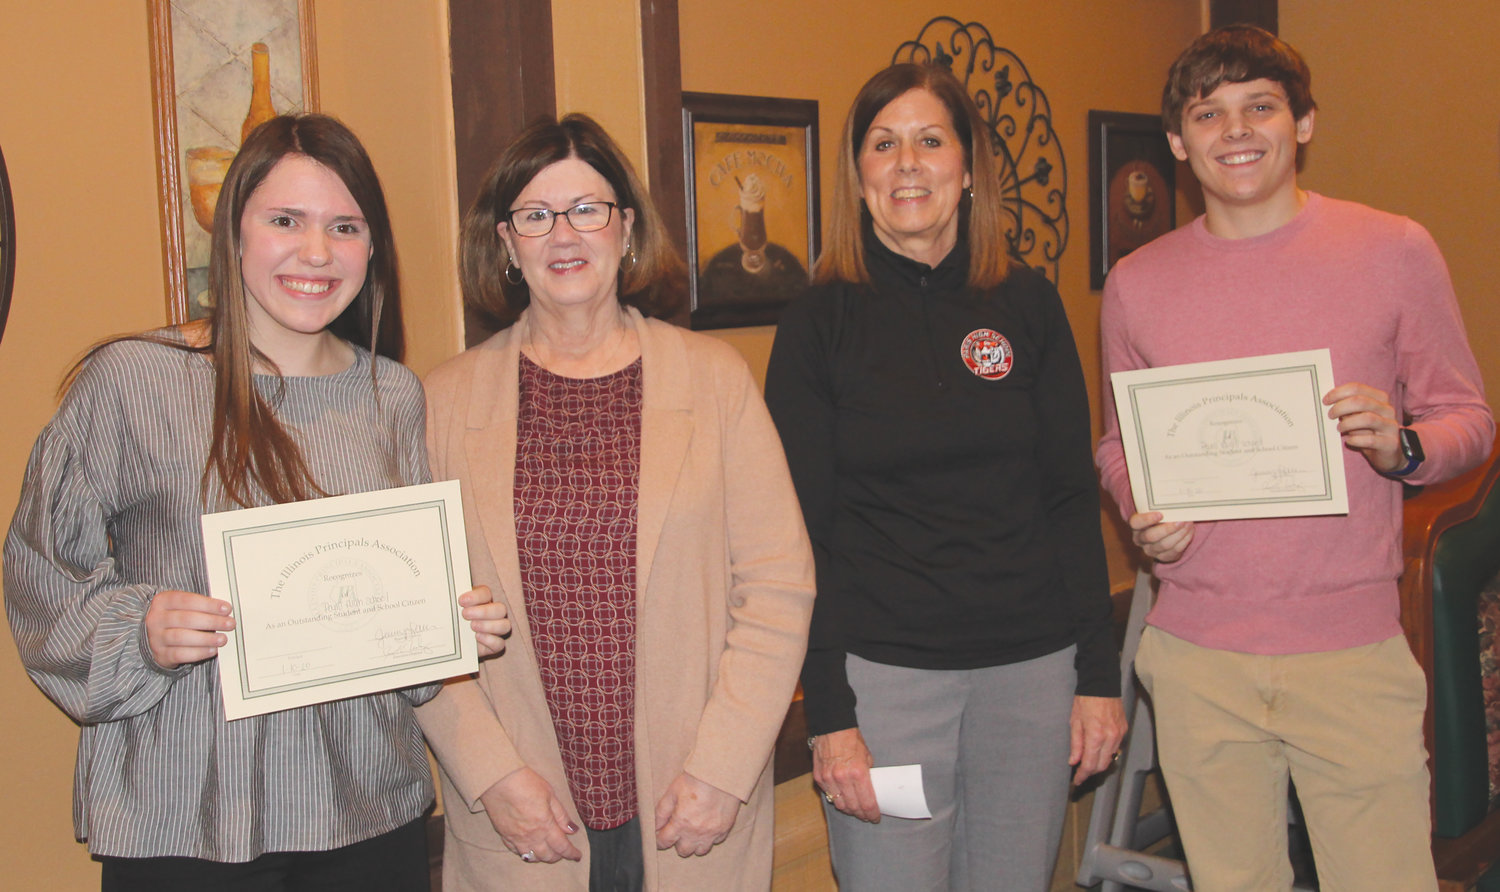 Interim Paris High School co-principals Lorraine Bailey and Carol Jones introduced two students from the school who were honored at the annual Edgar County Principal's Breakfast Jan. 10 at Tuscany Restaurant in Paris. Pictured, from left, are Katrina Strow, Bailey, Jones and Chase Hays.